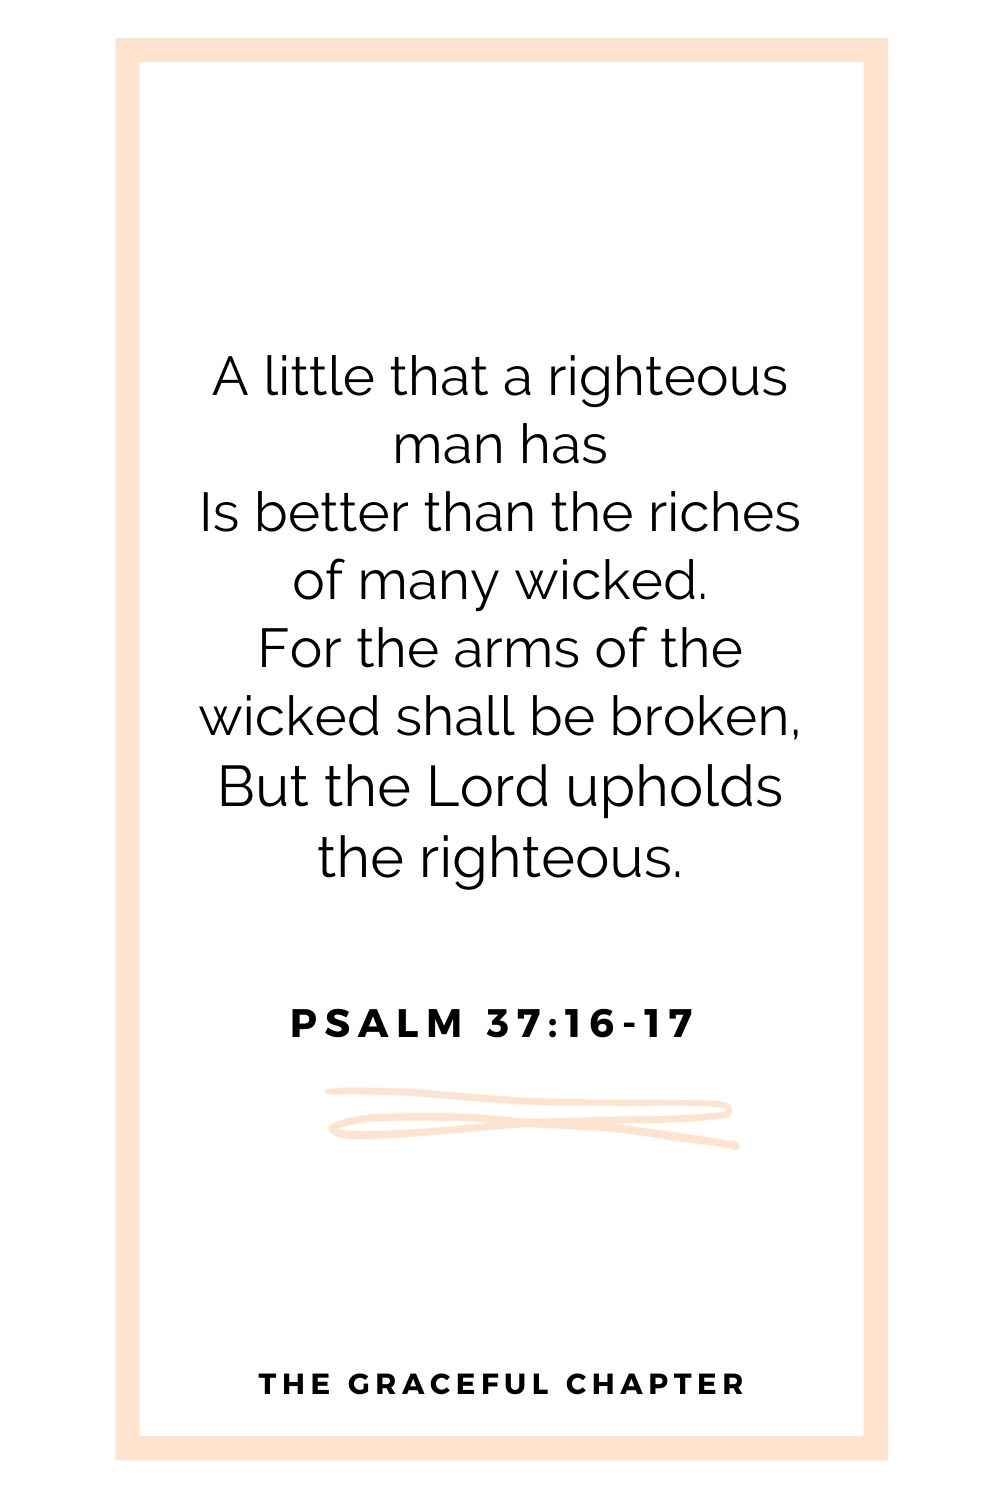 A little that a righteous man has Is better than the riches of many wicked. For the arms of the wicked shall be broken, But the Lord upholds the righteous. Psalm 37:16-17